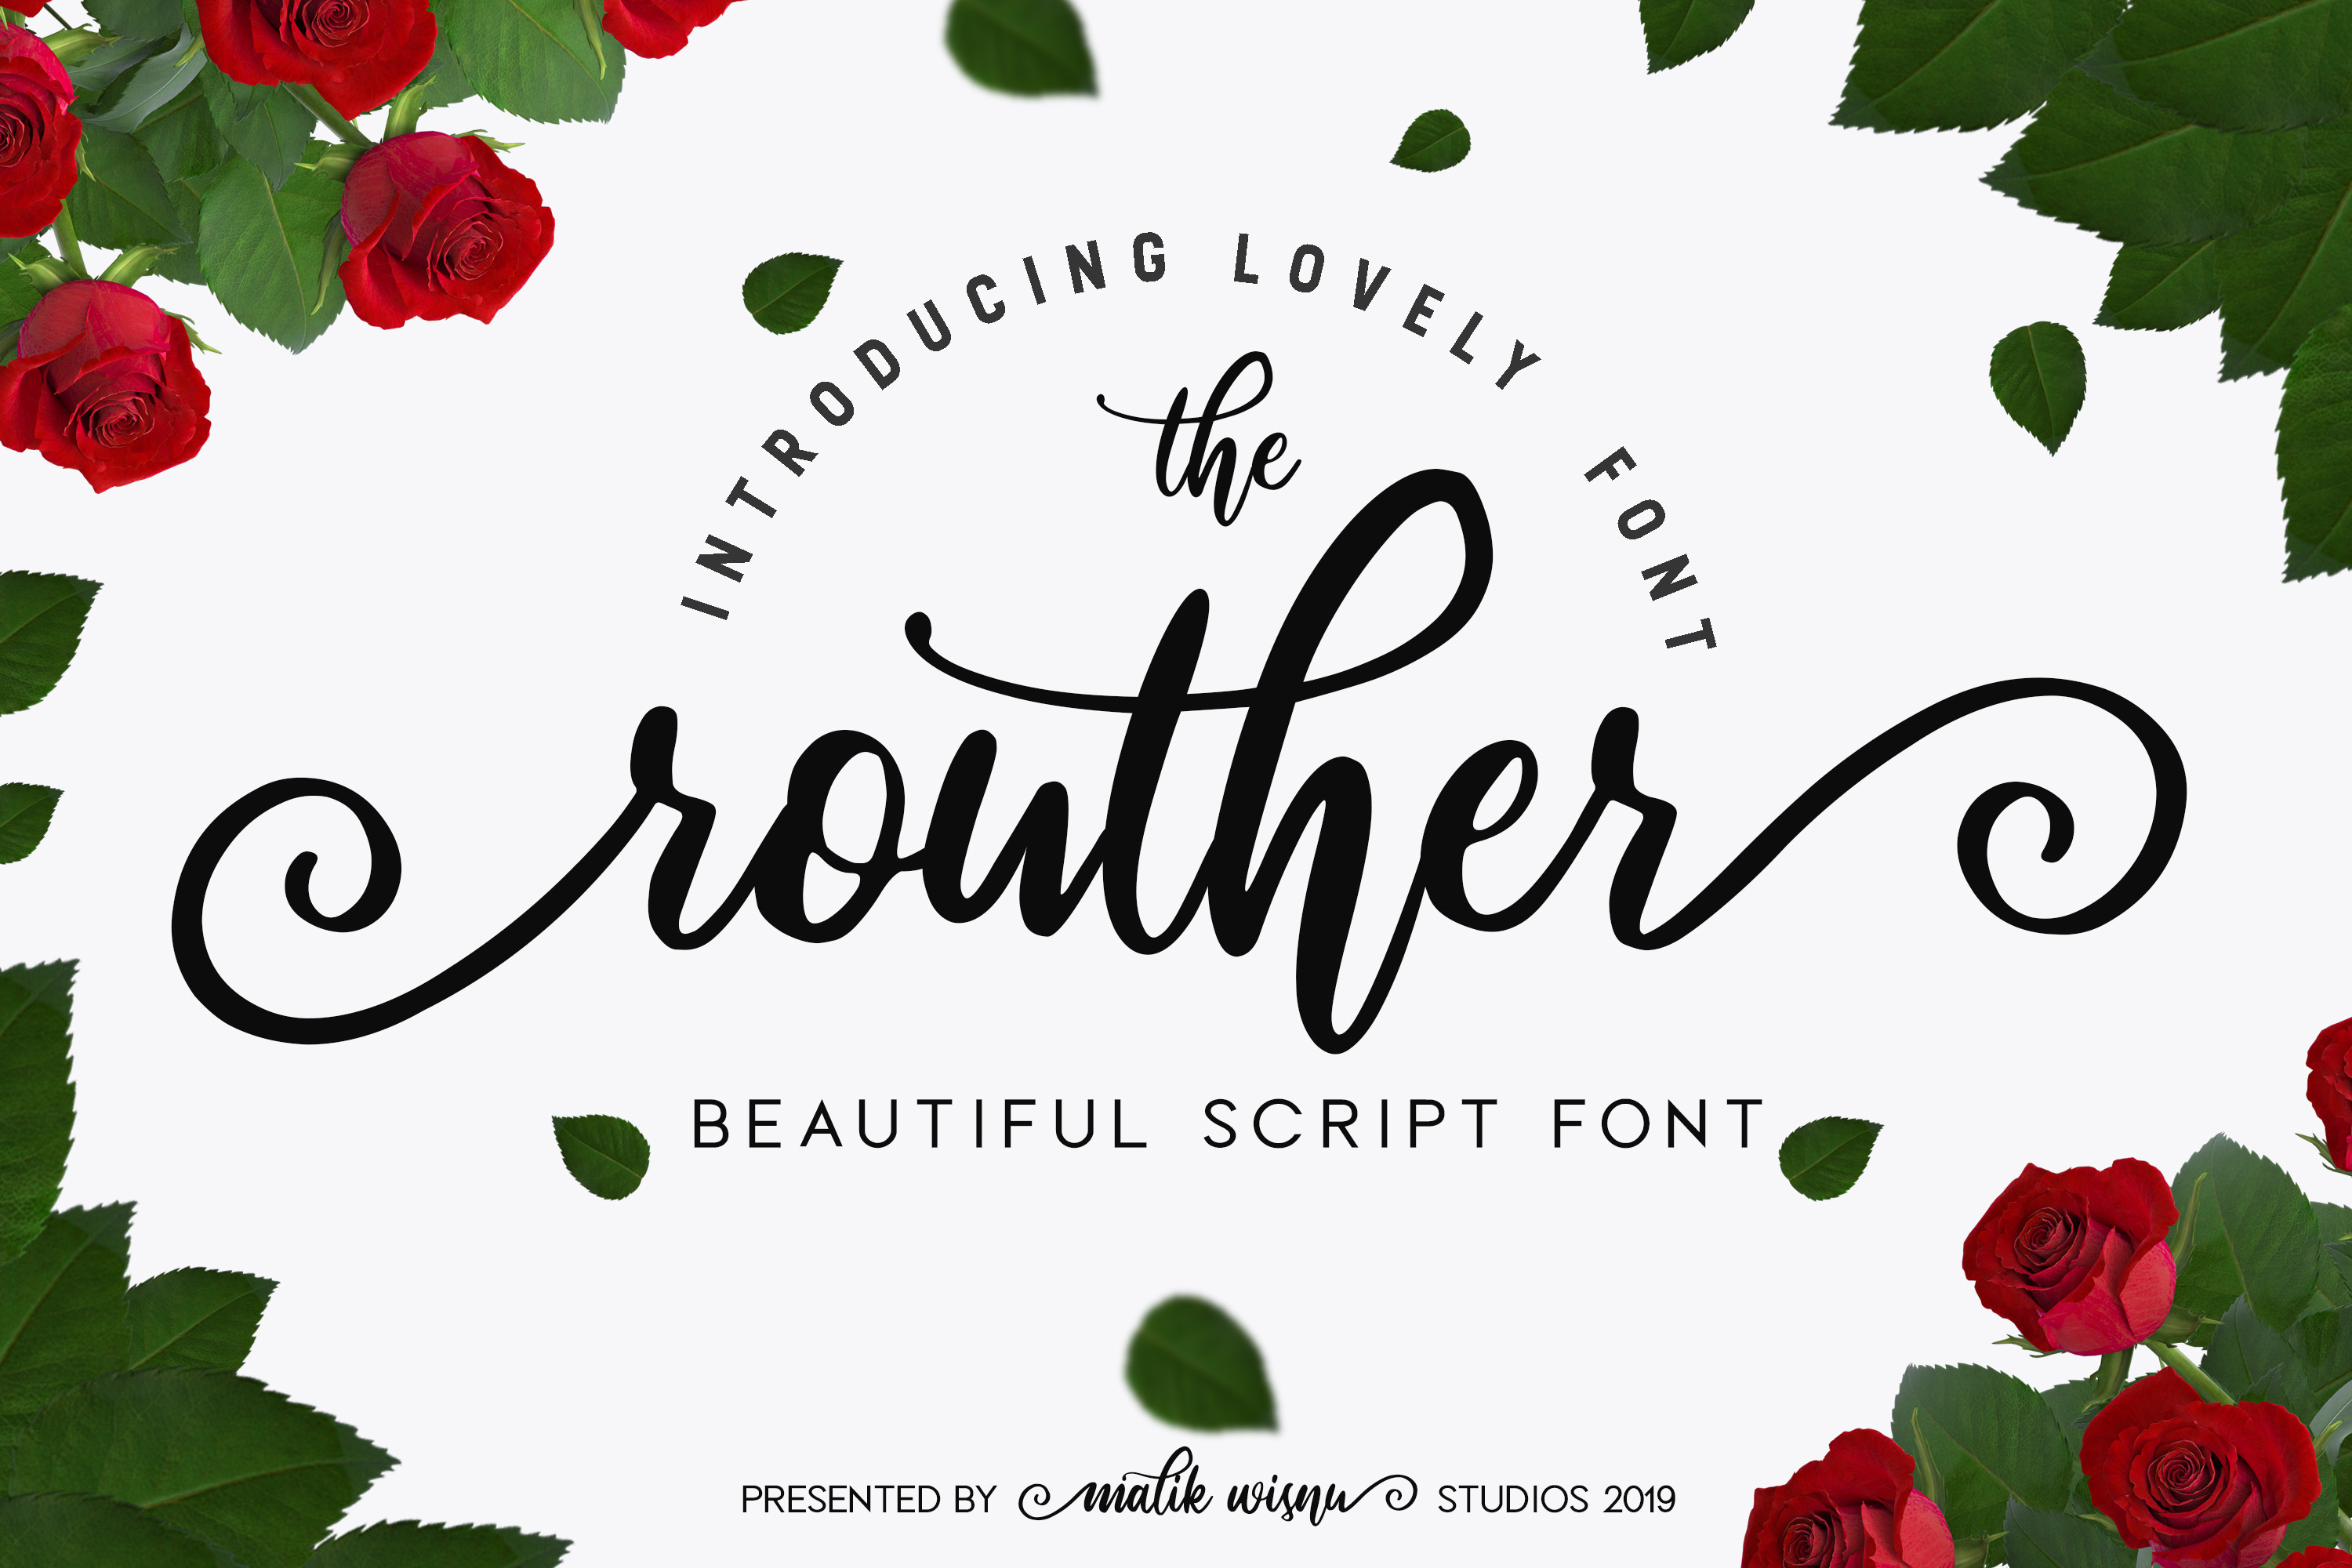 Download Free The Only Thing Better Than Having You For A Mum Is My Children for Cricut Explore, Silhouette and other cutting machines.